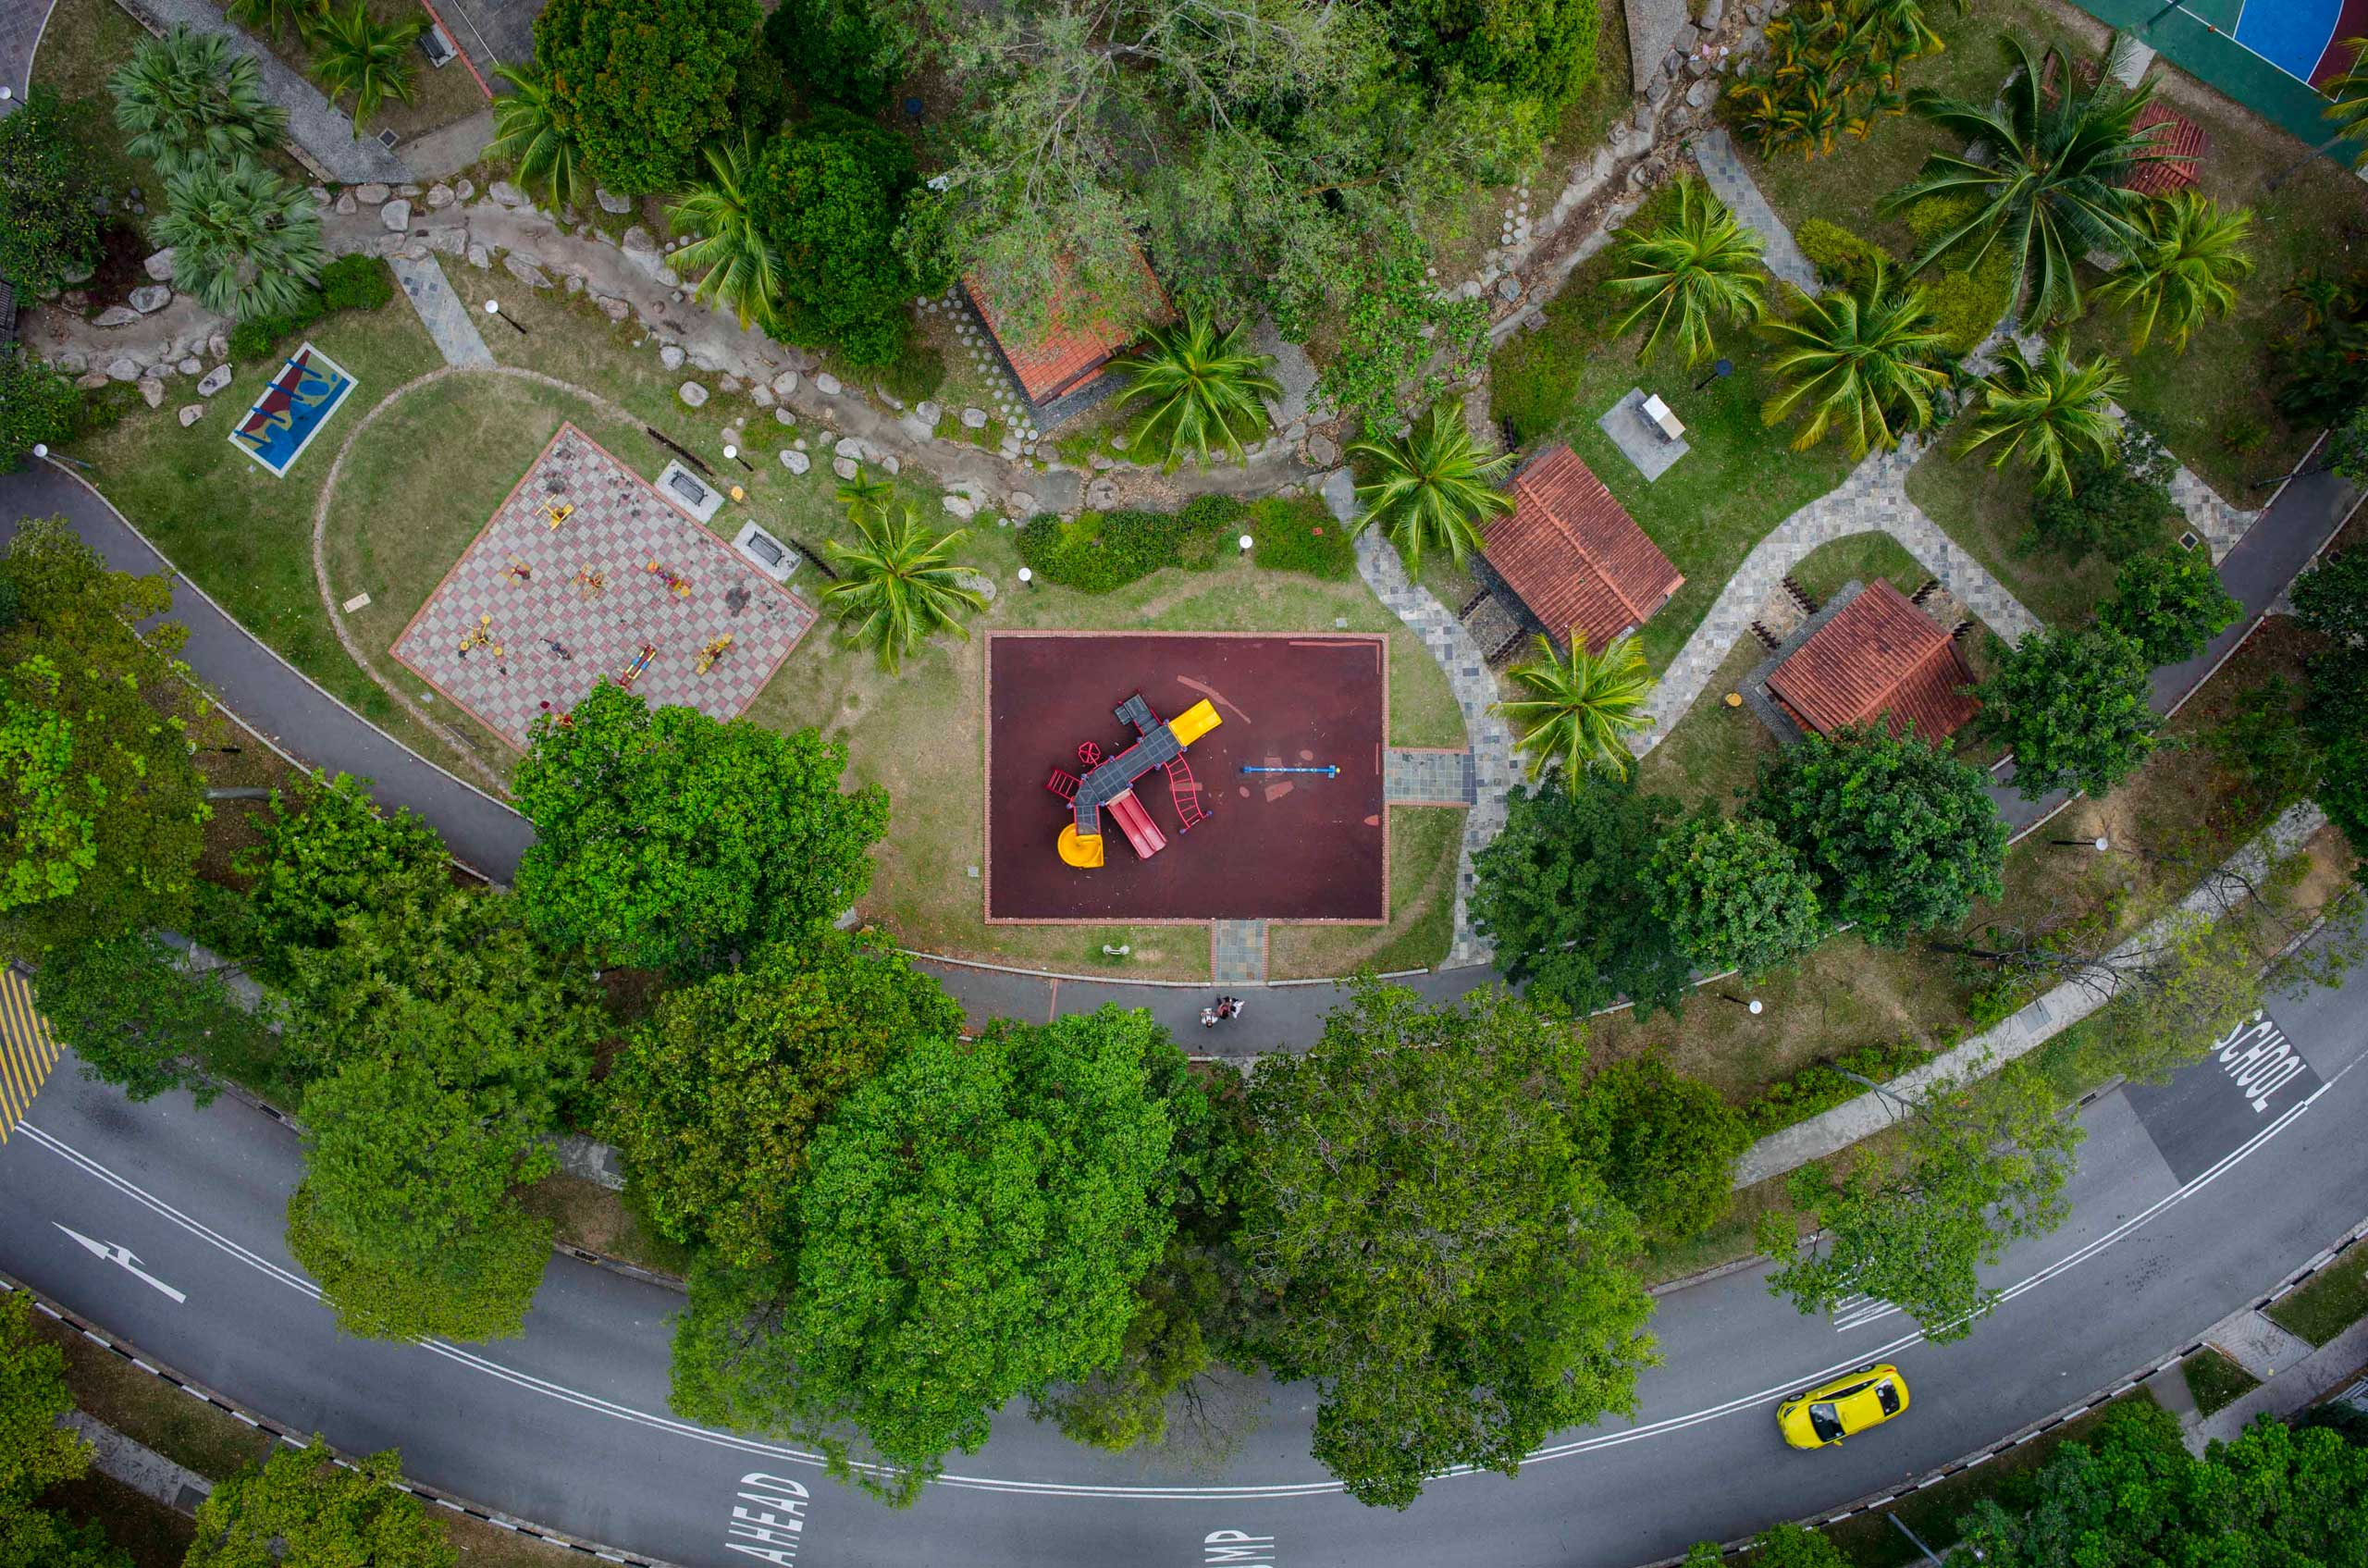 National Geographic Proof: The Delightfulness of Playgrounds, as Seen From AboveStagmont Park (785 Choa Chu Kang Drive)